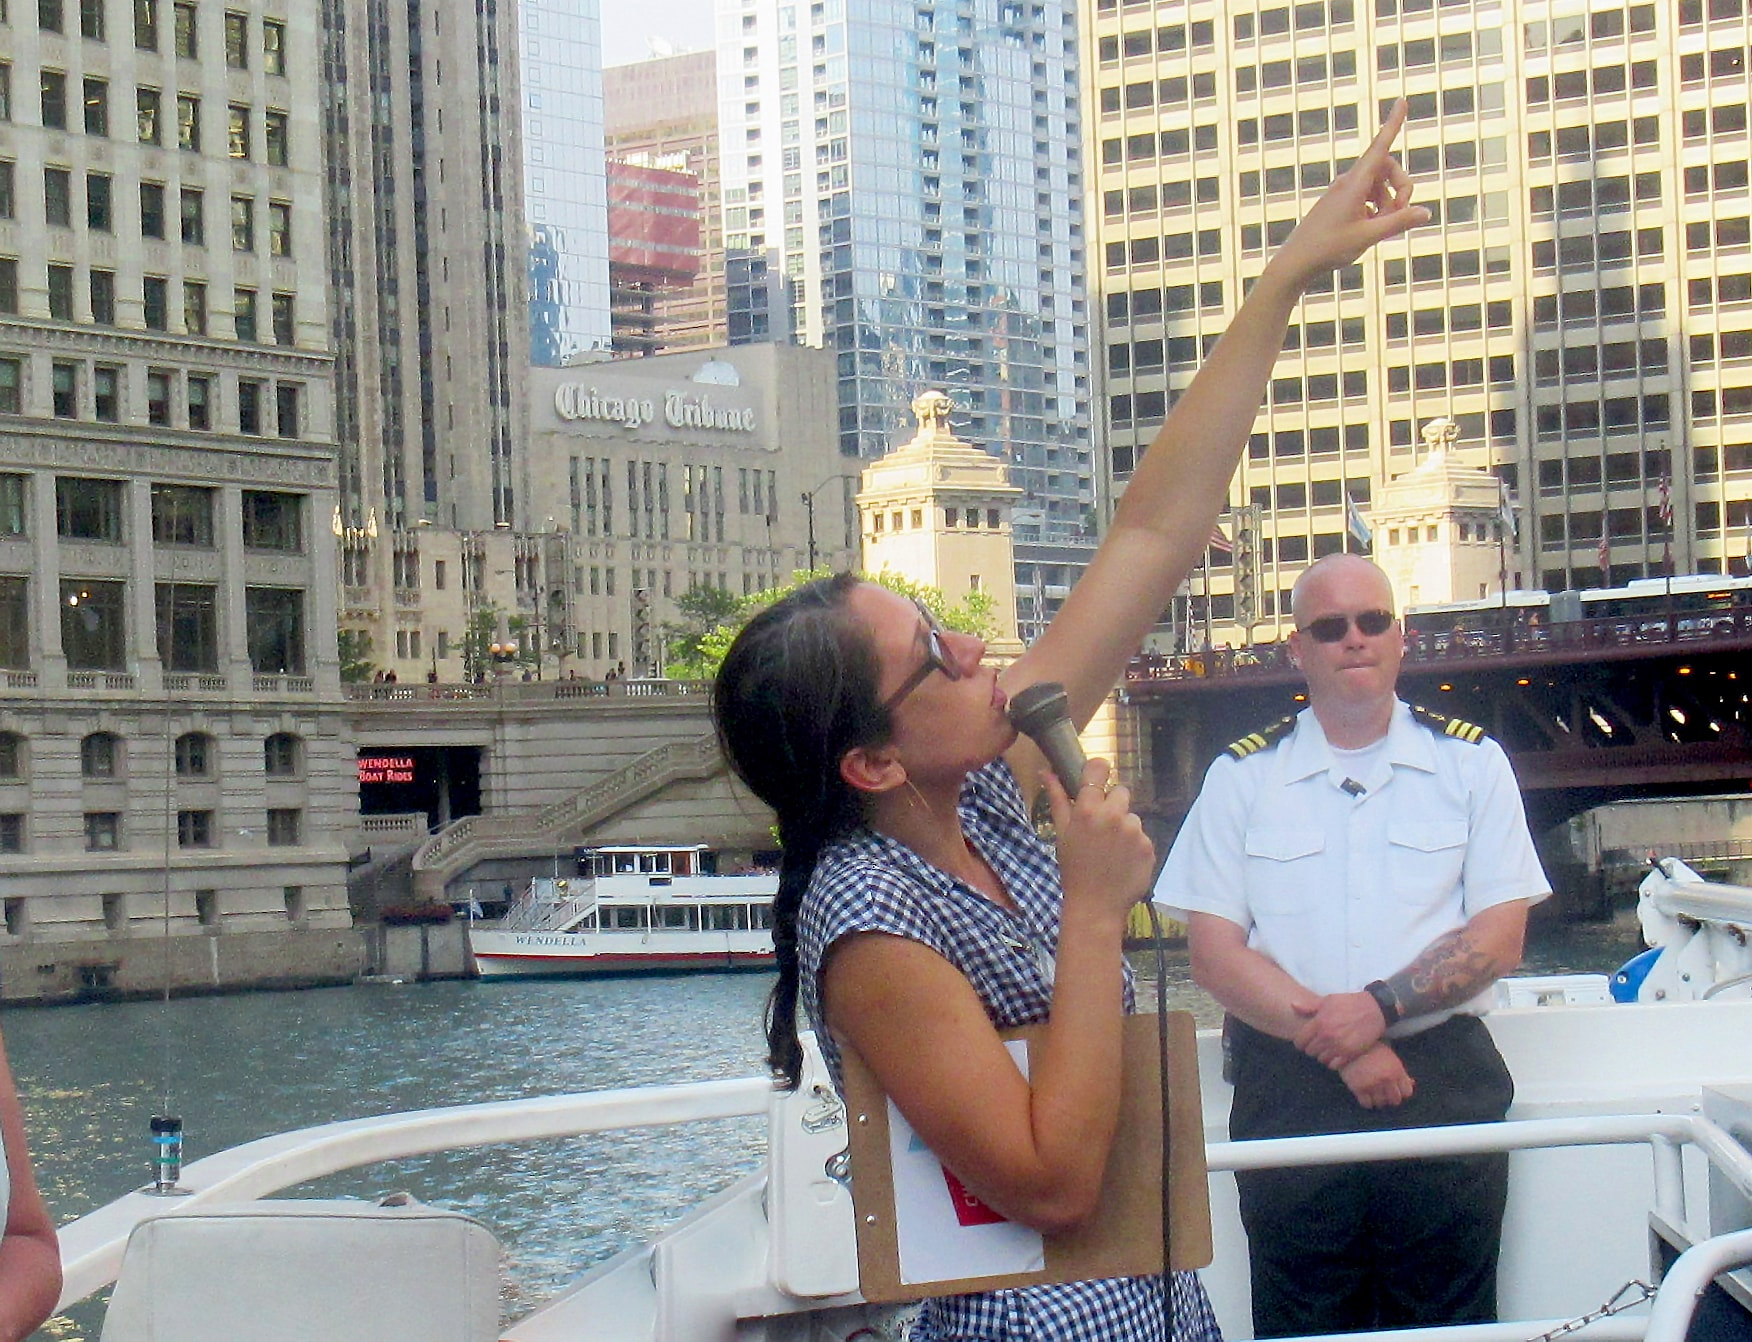 Chicago tour company yacht charters professional tour guide Amanda Scotese